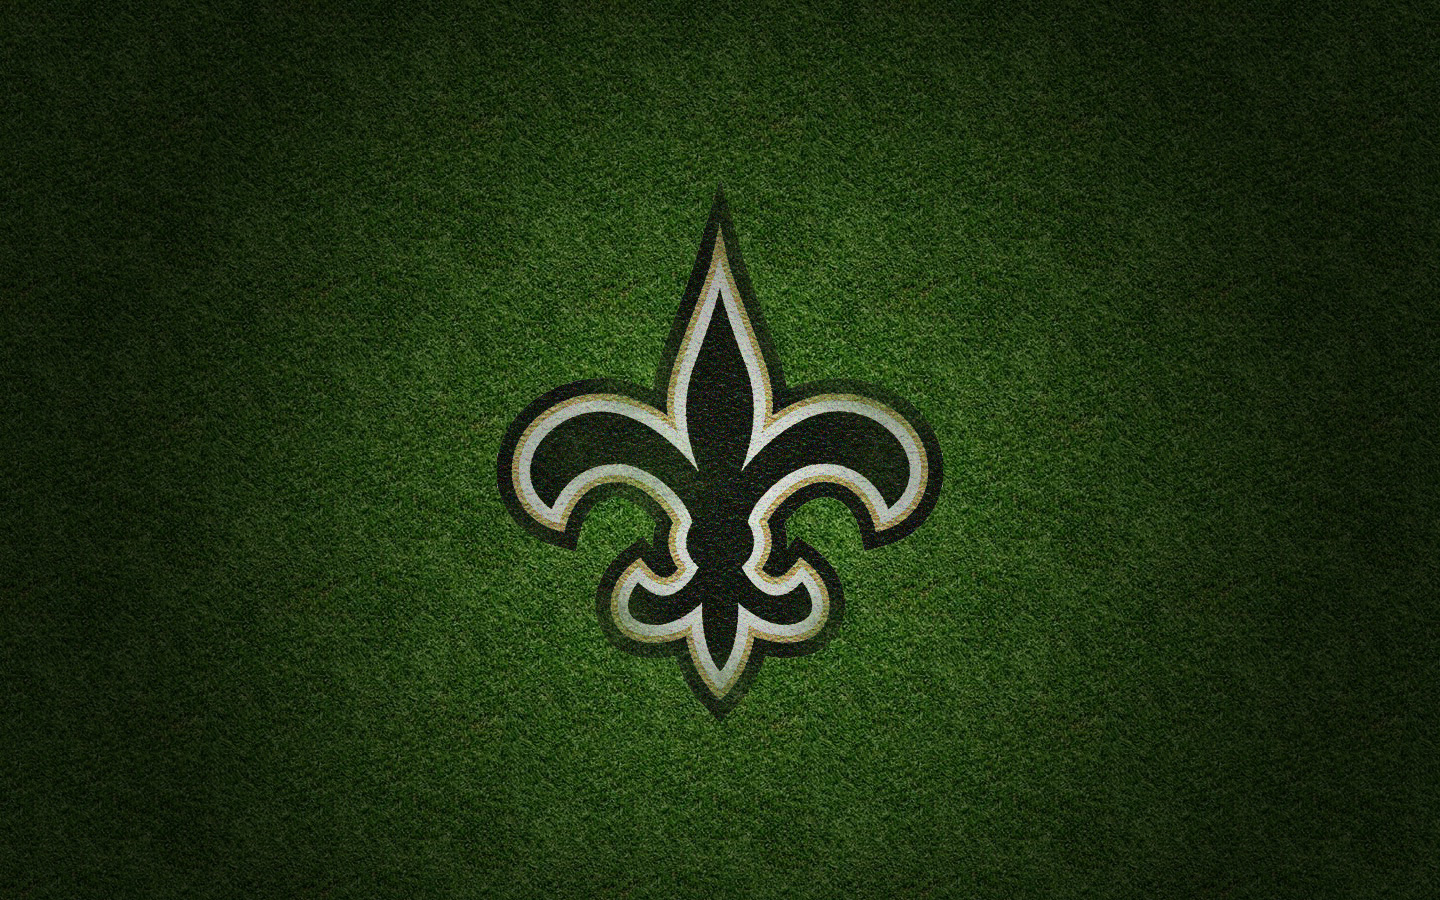 The Ultimate New Orleans Saints Wallpaper Collection 1440x900